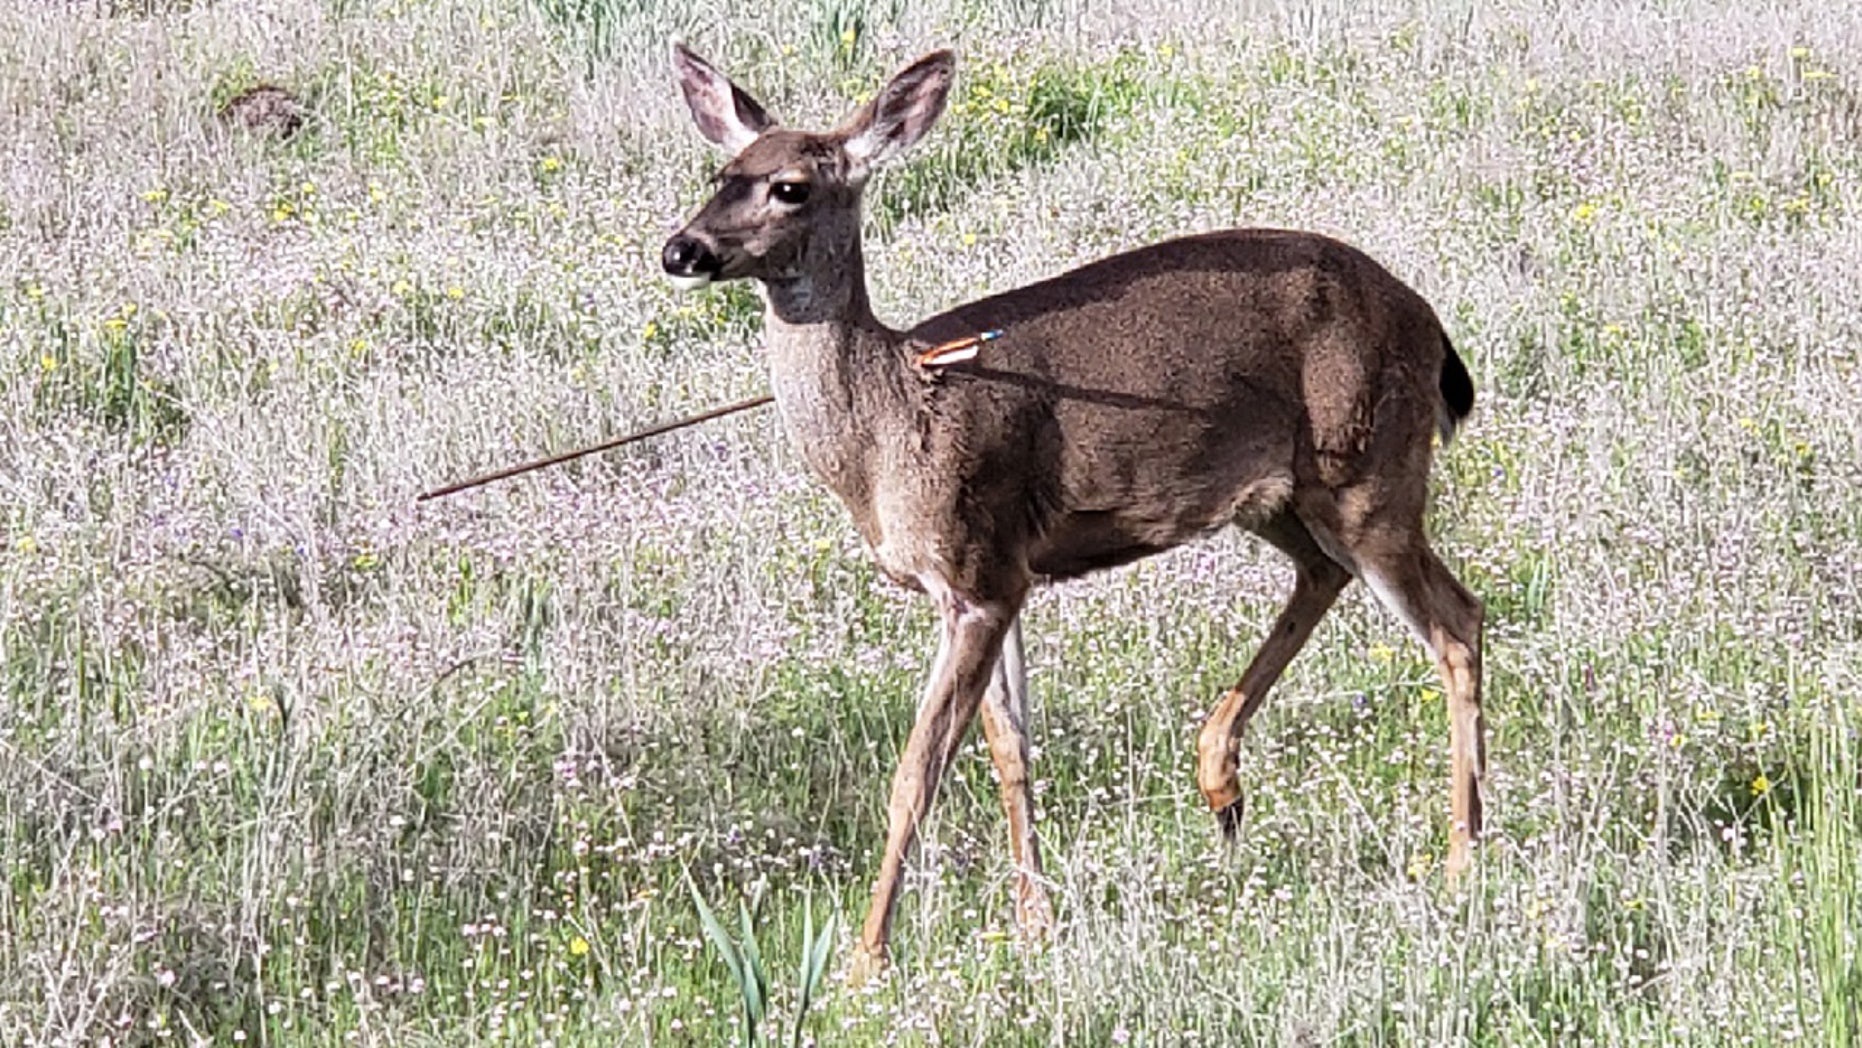 Two deer were discovered Friday with arrows protruding from their bodies, according to police.